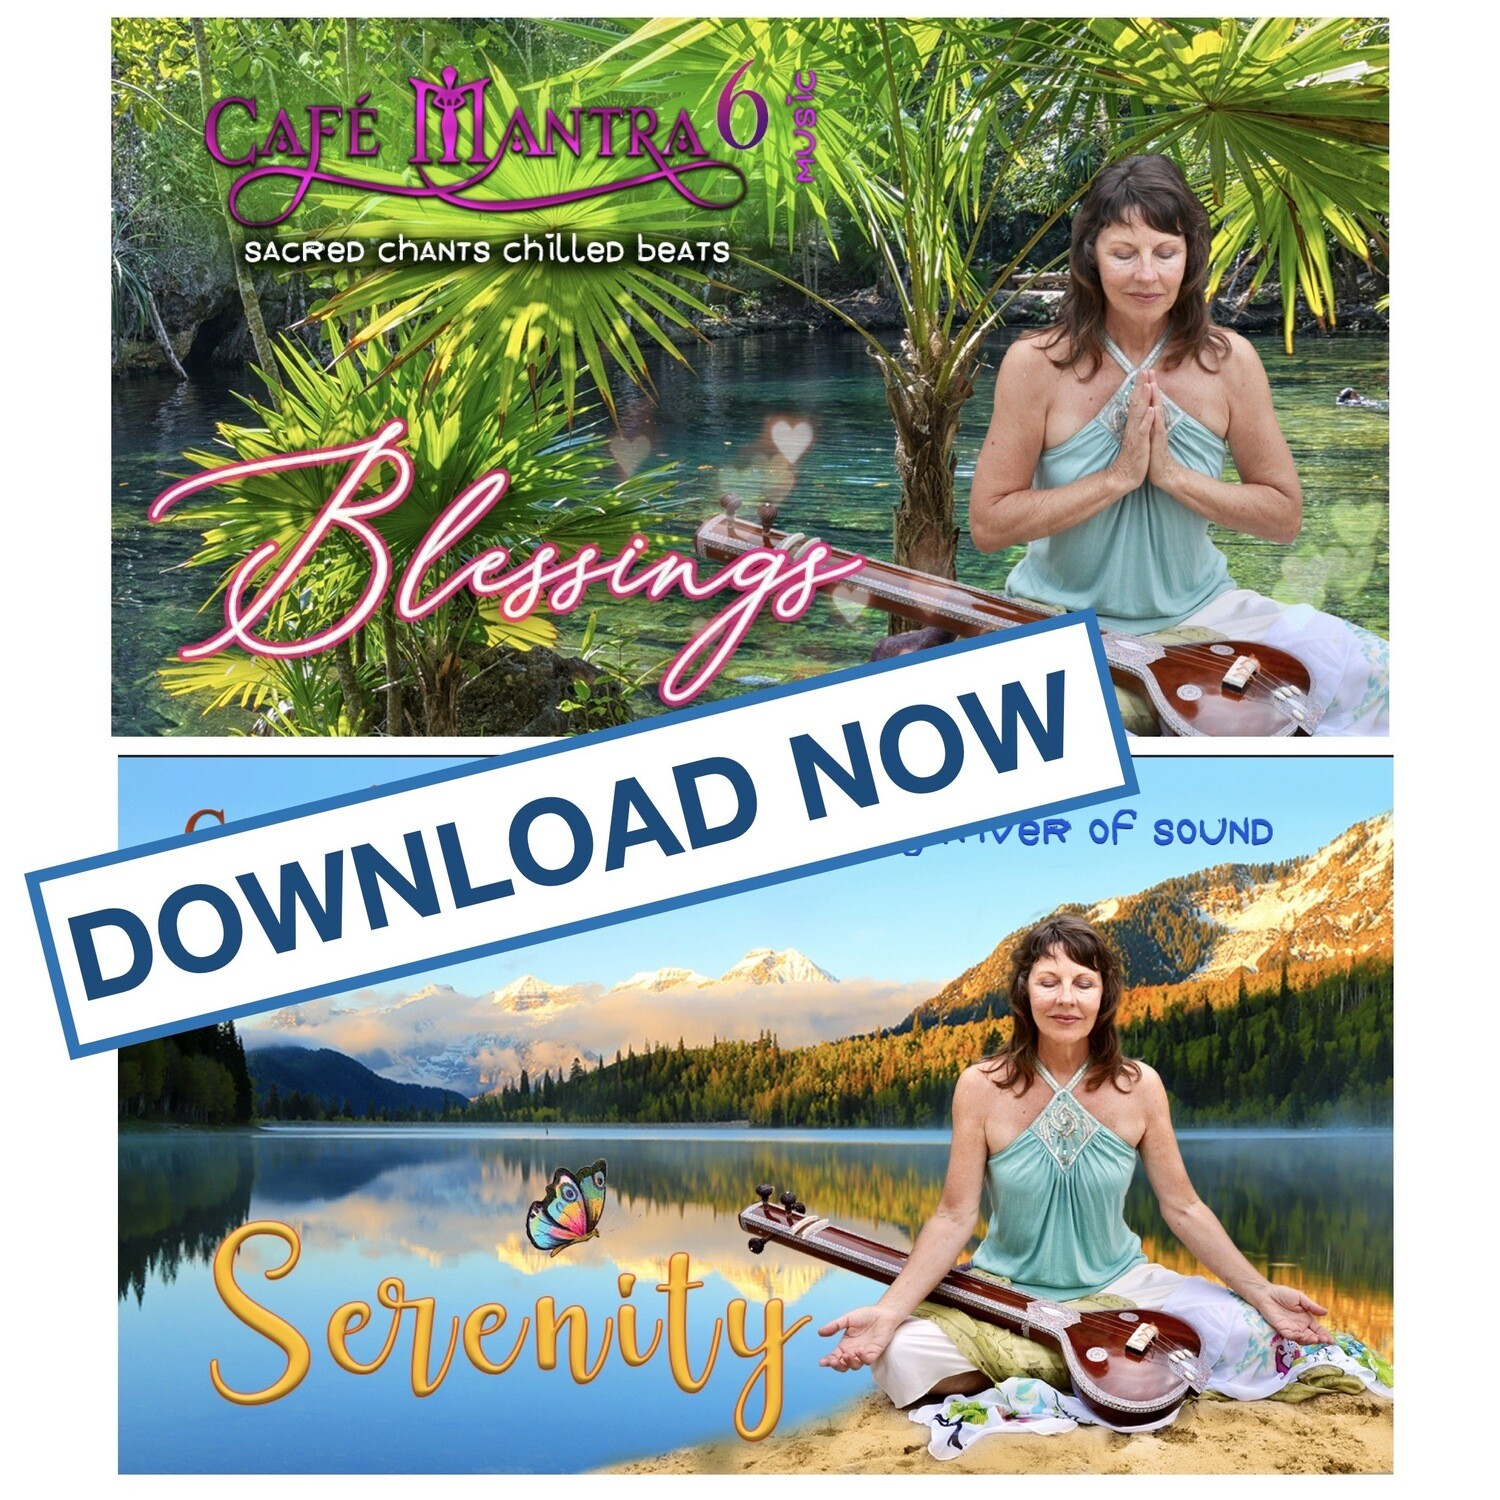 DOWNLOAD: 2 New Releases